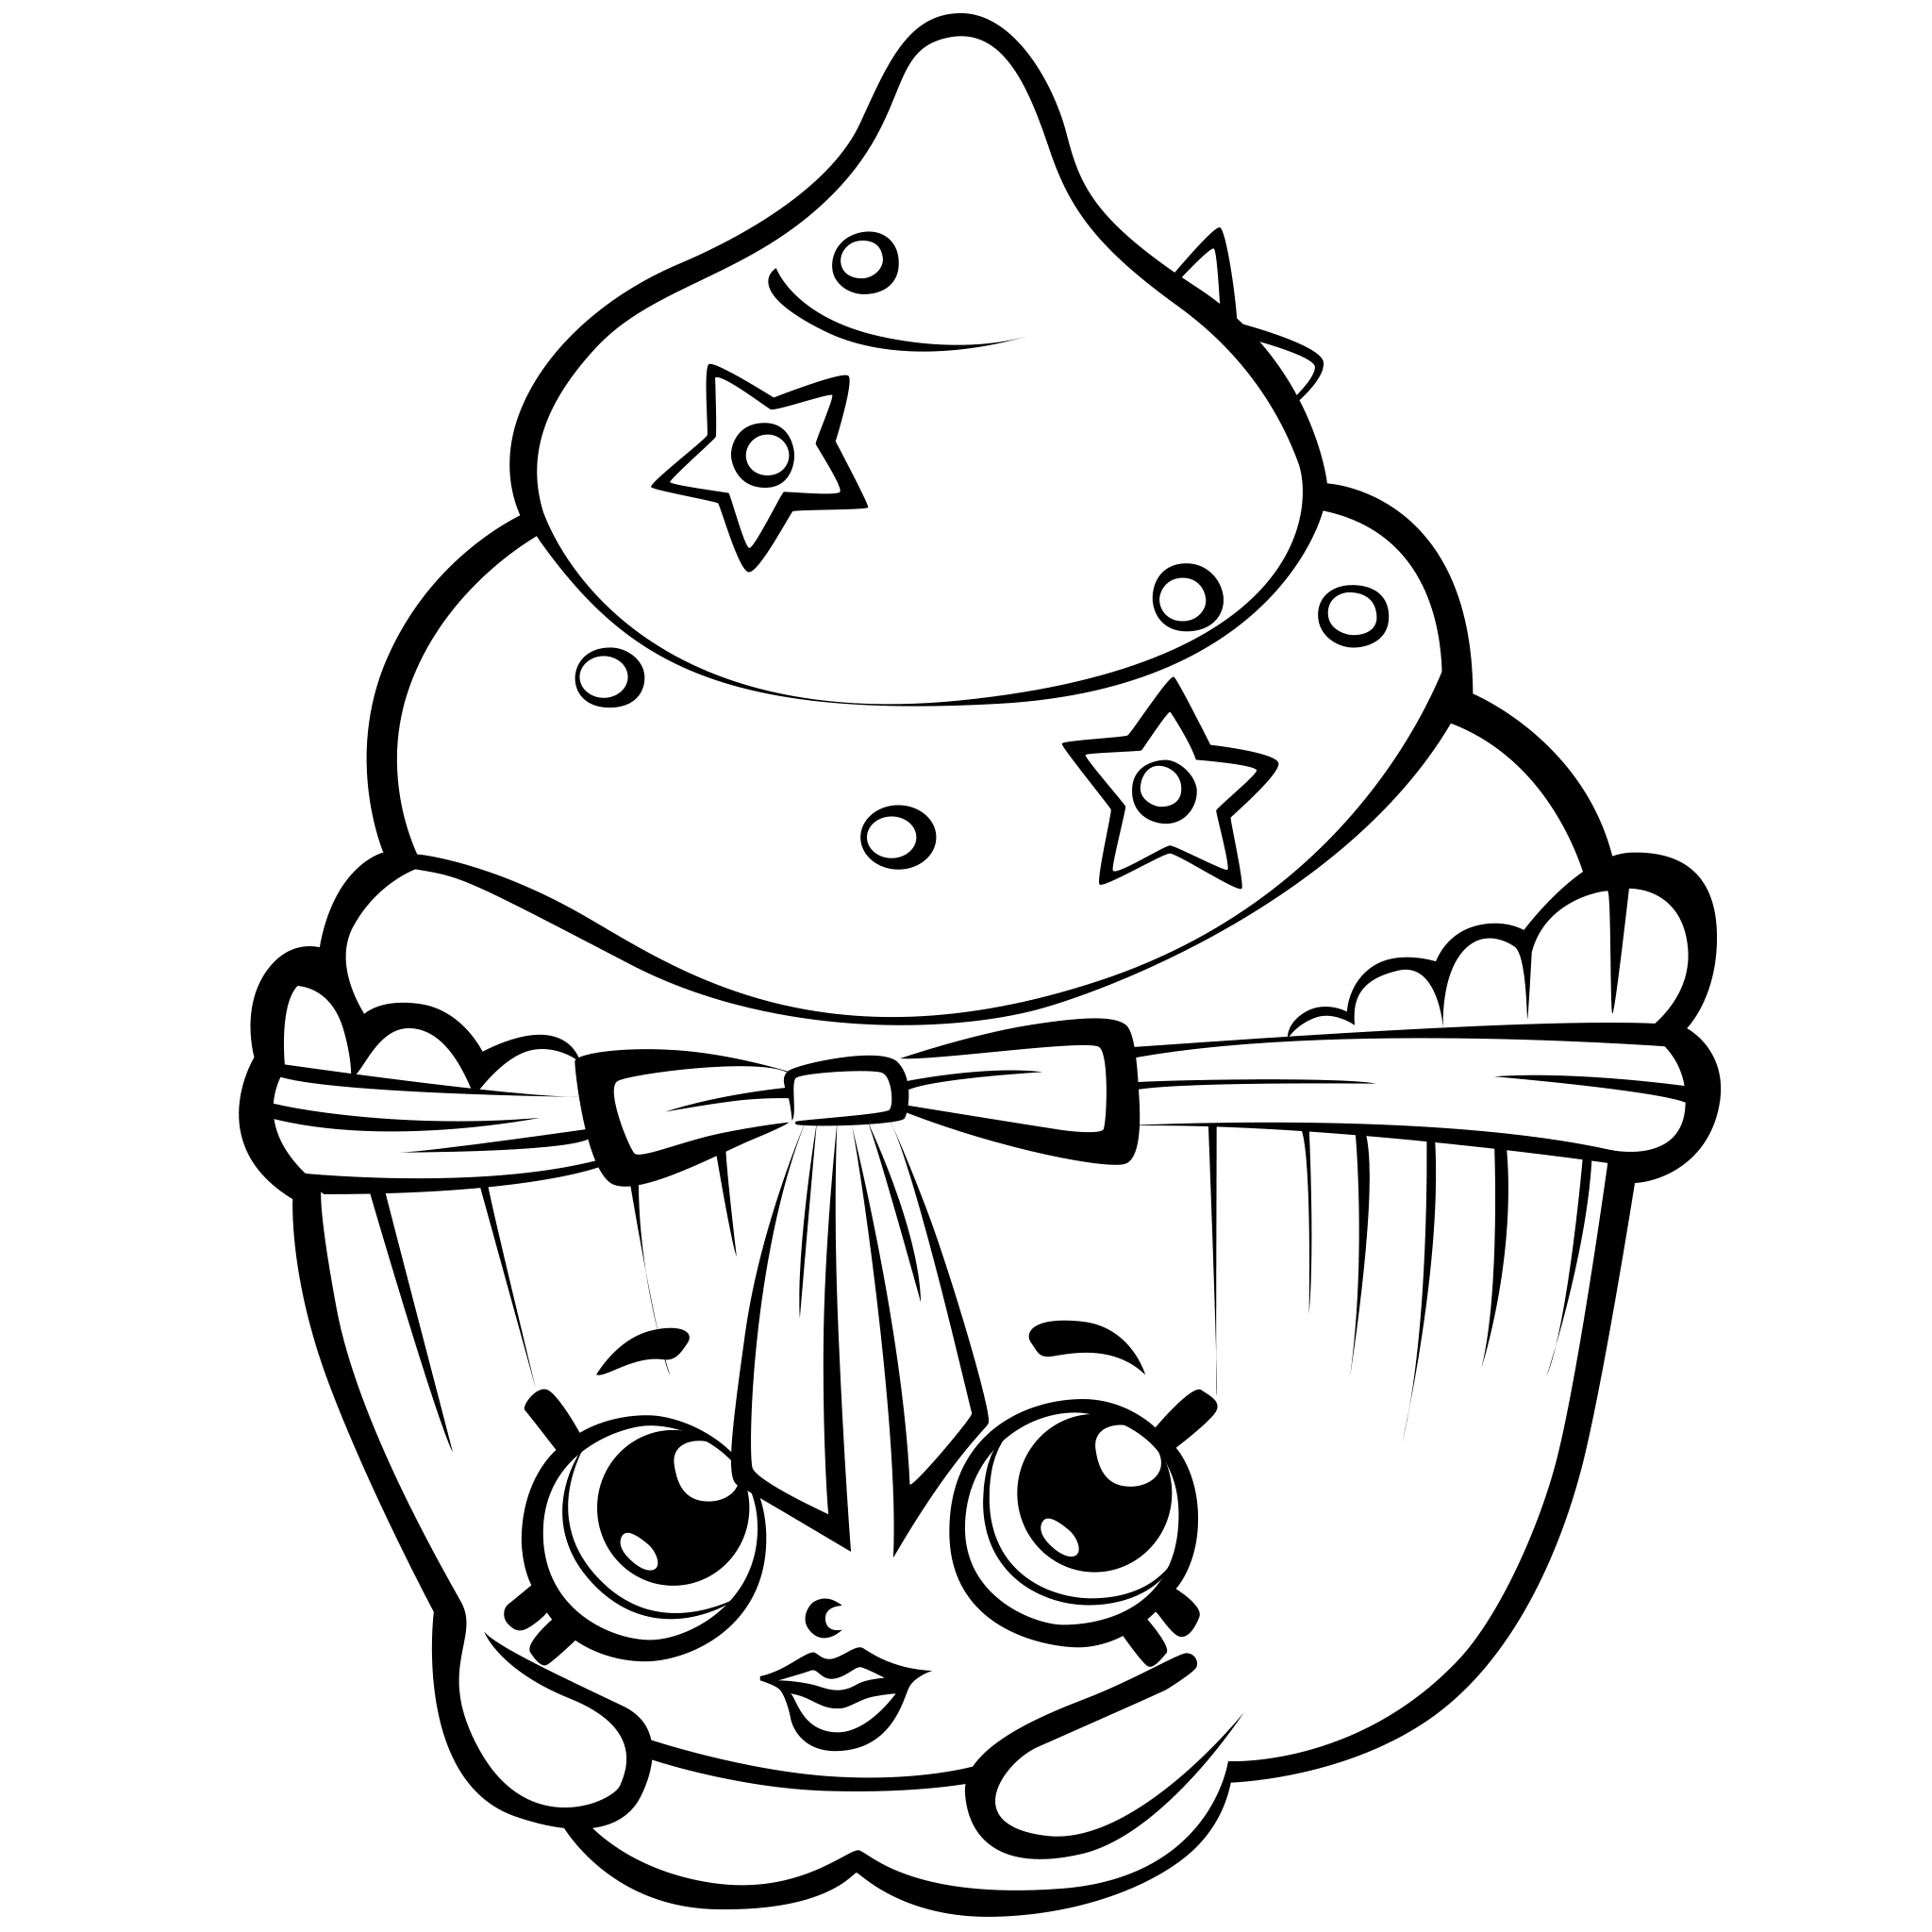 2048x2048 Shopkins Coloring Pages